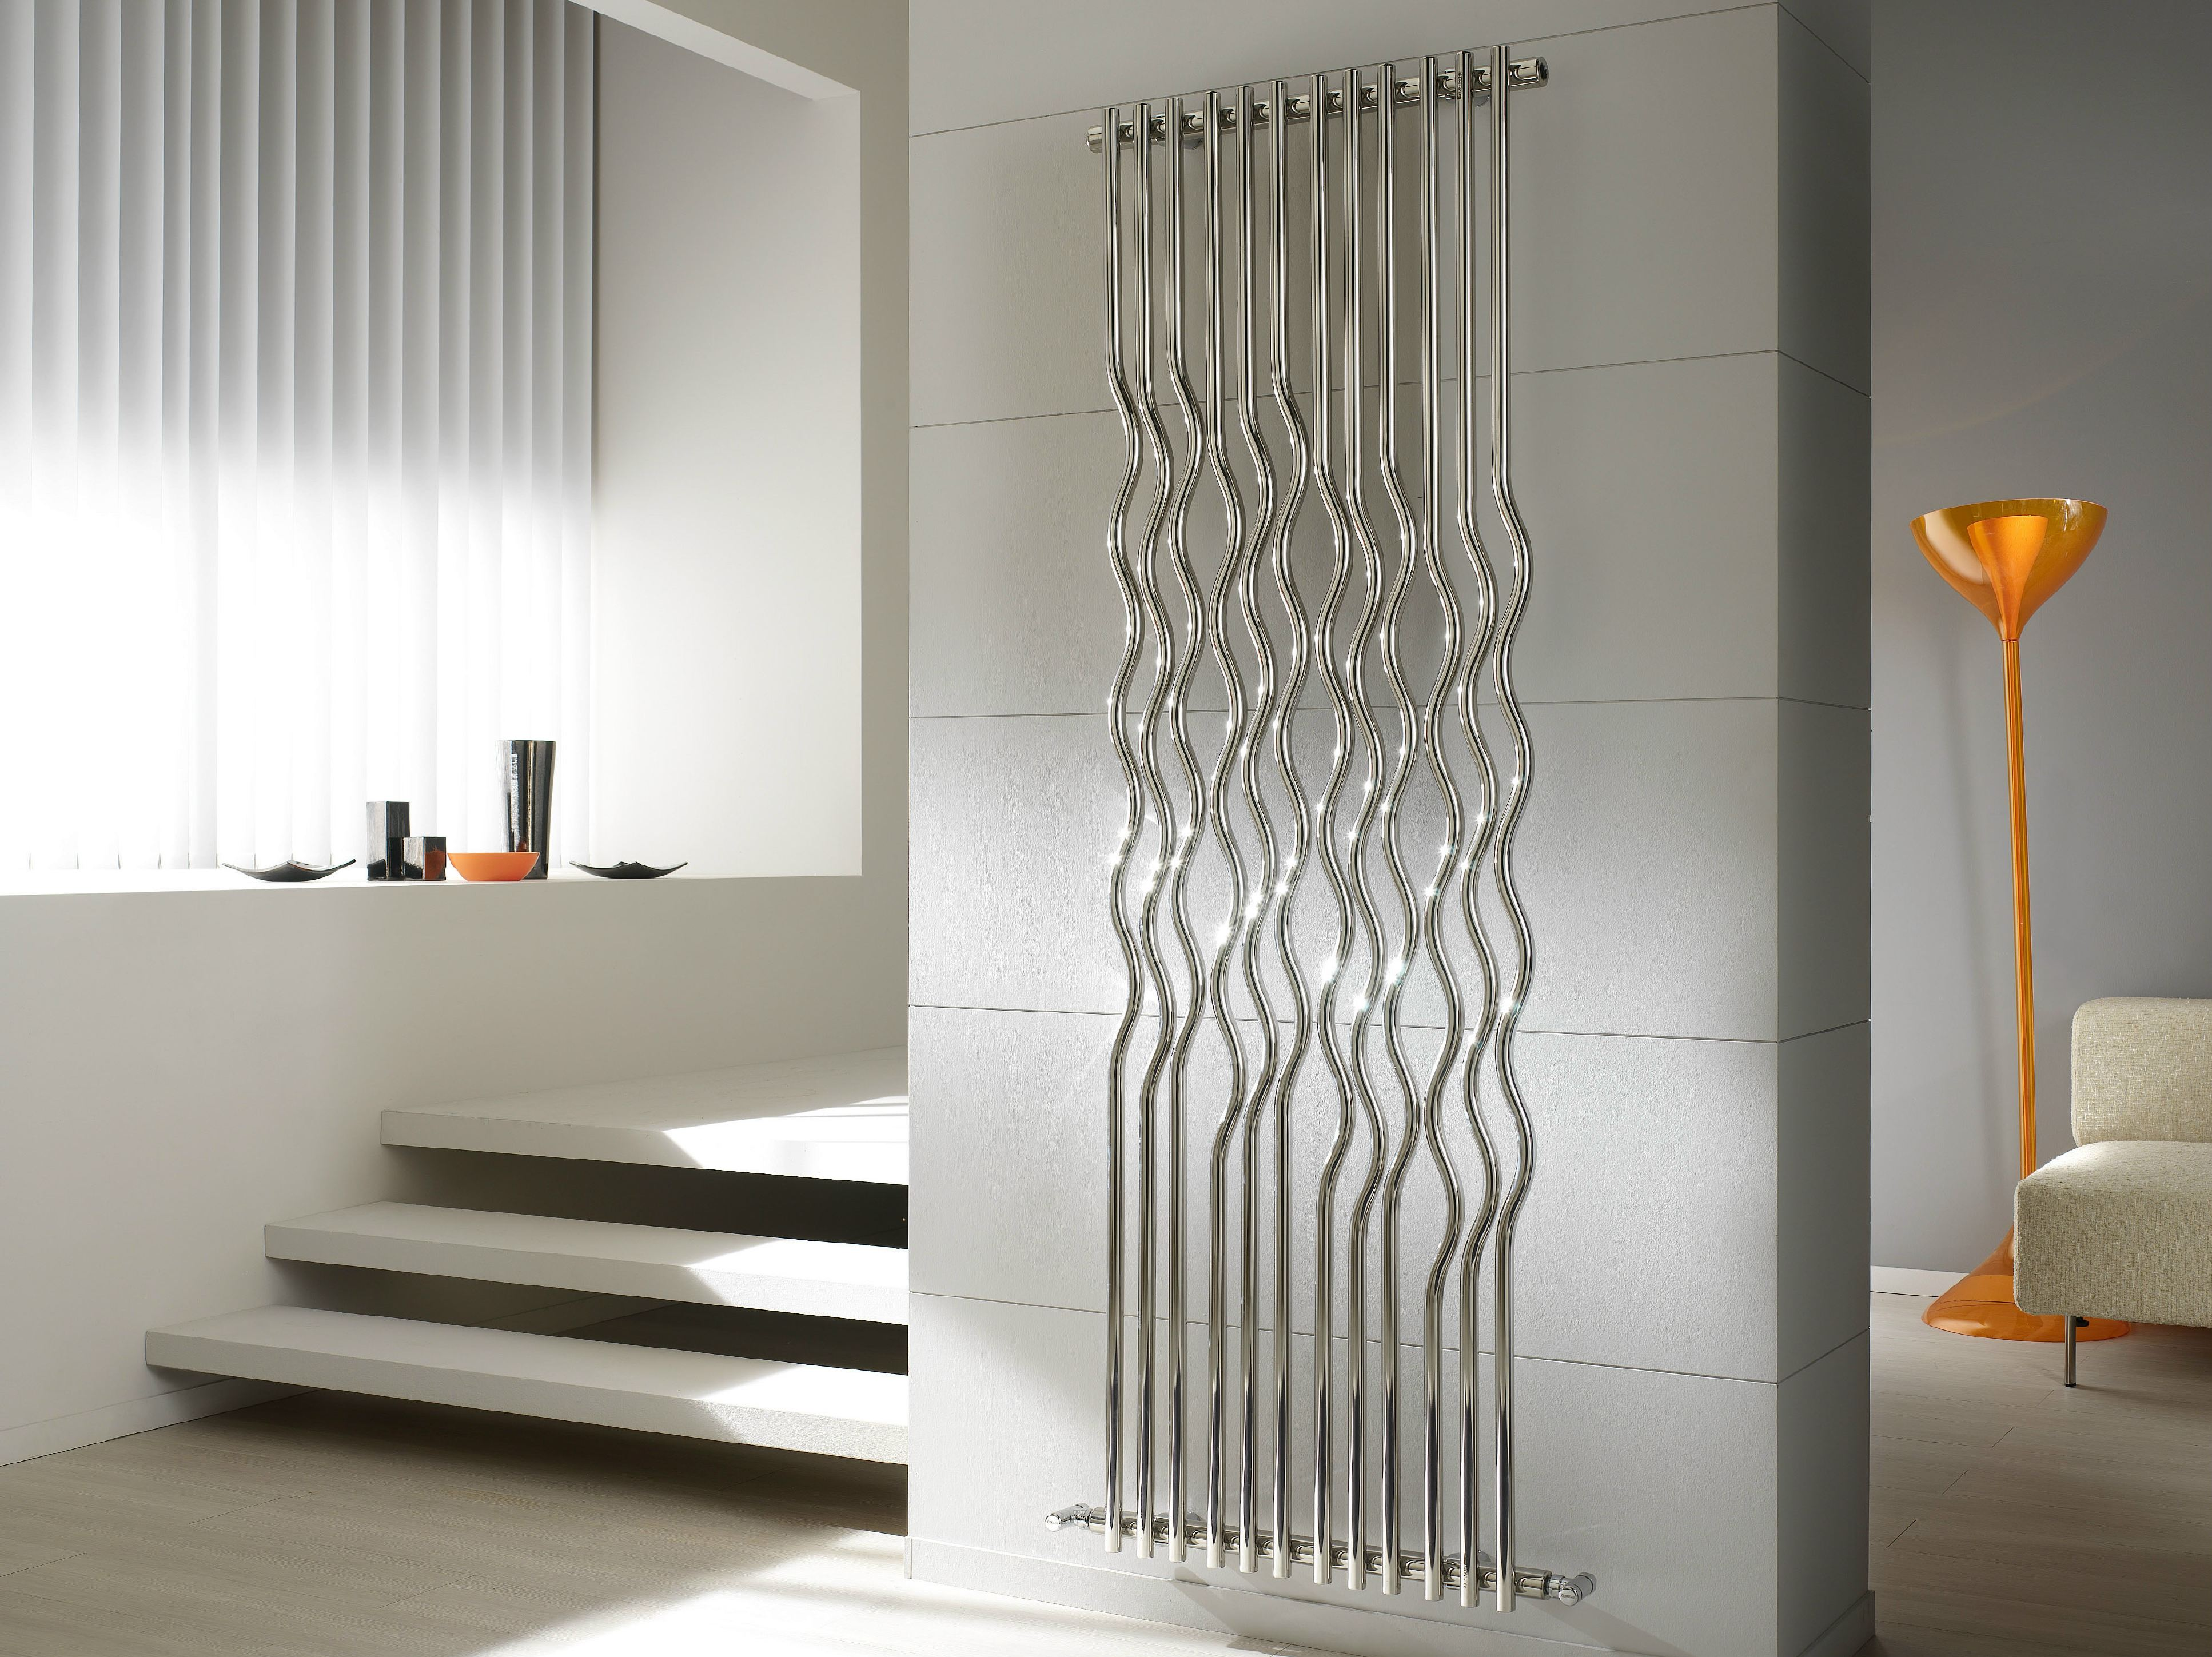 Rio termoarredo in acciaio lucido by cordivari design for Termoarredo tubes